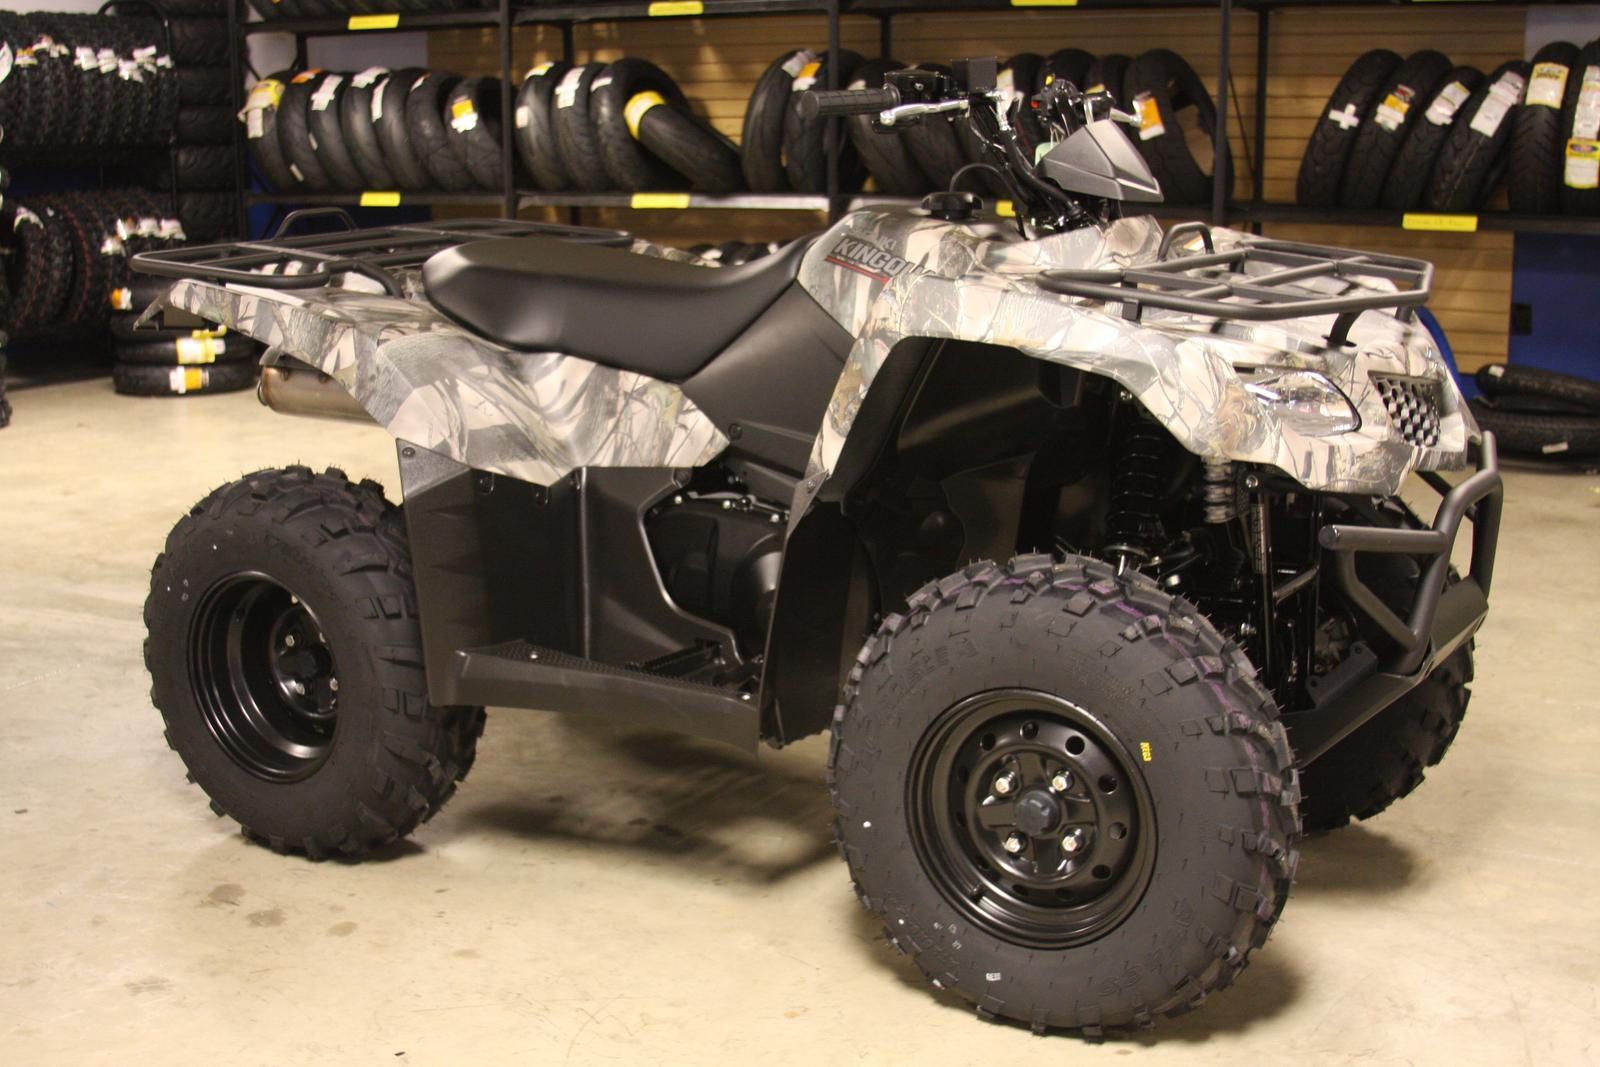 2018 Suzuki KINGQUAD 500AXI EPS for sale in YORK, PA | AMS